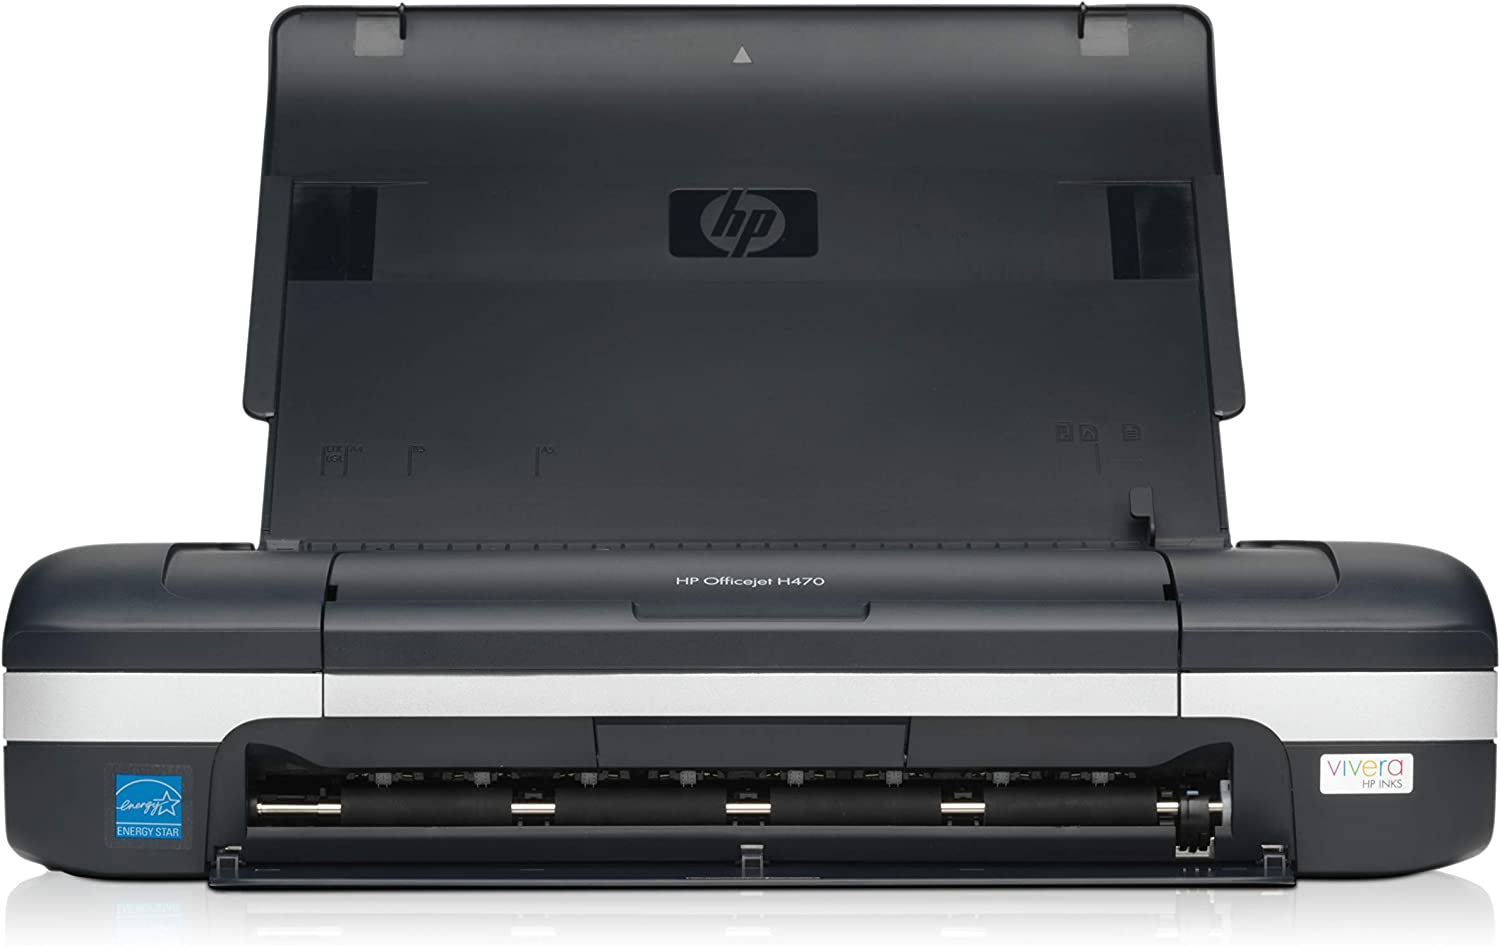 HP Officejet H470wf Mobile Printer